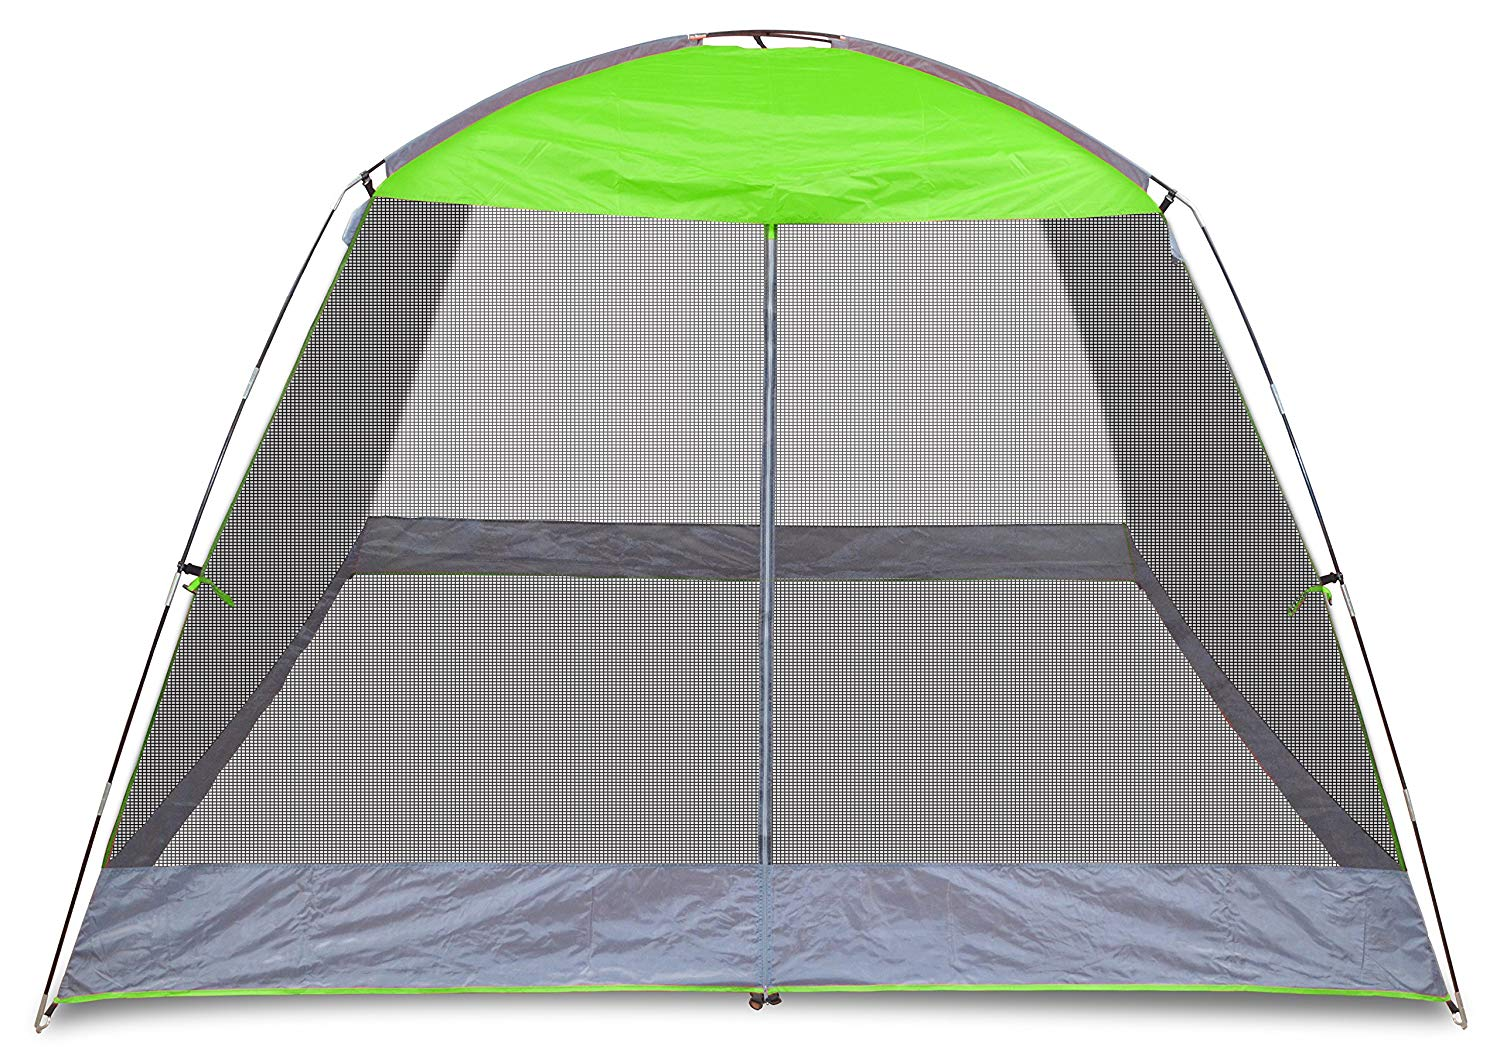 Caravan Canopy 81018013320 Sports Screen House Shelter, 10 x 10', Lime Green